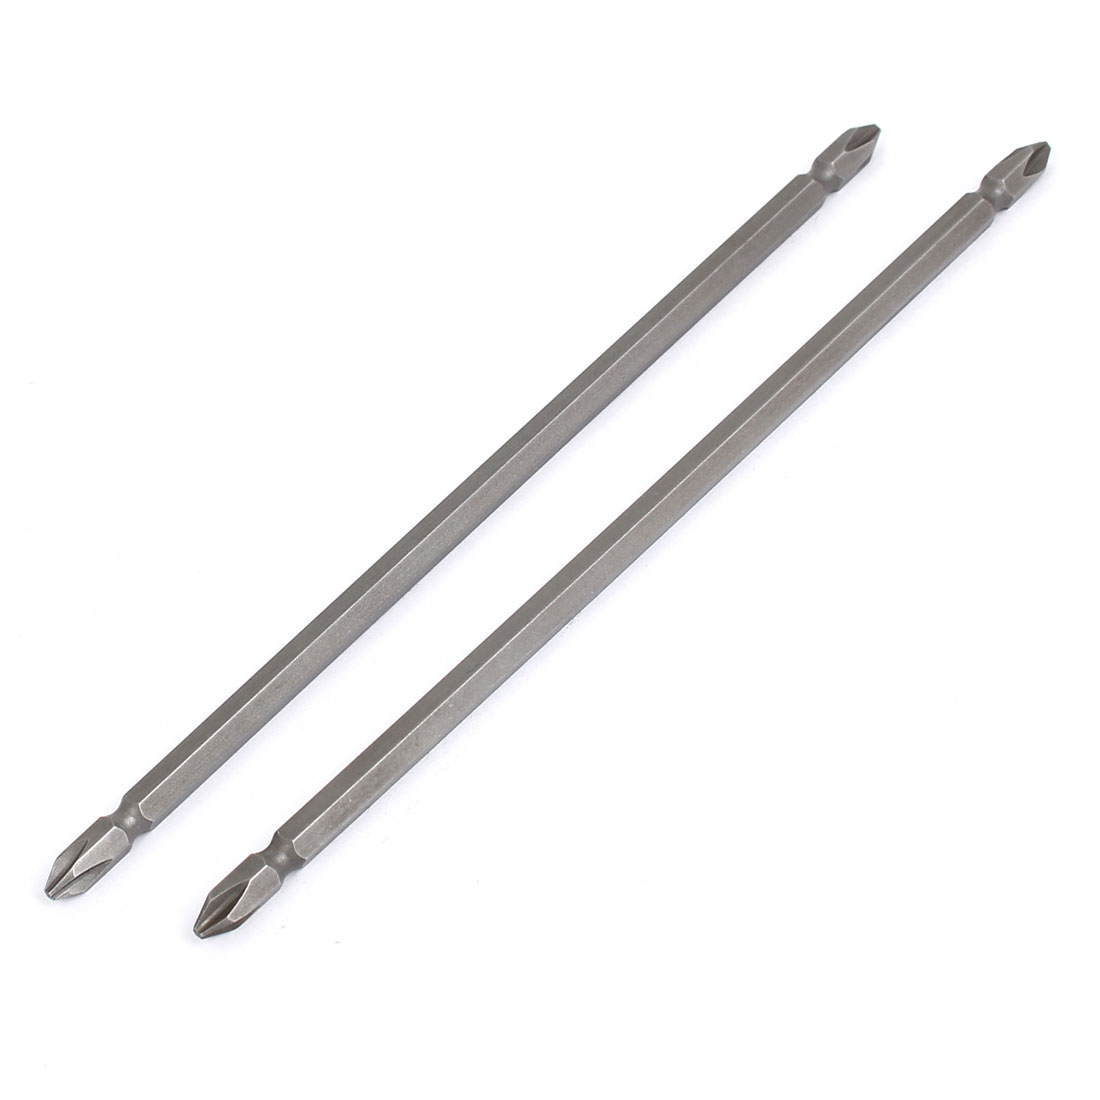 200mm Long PH2 Magnetic Dual End Phillips Screwdriver Bits 2pcs